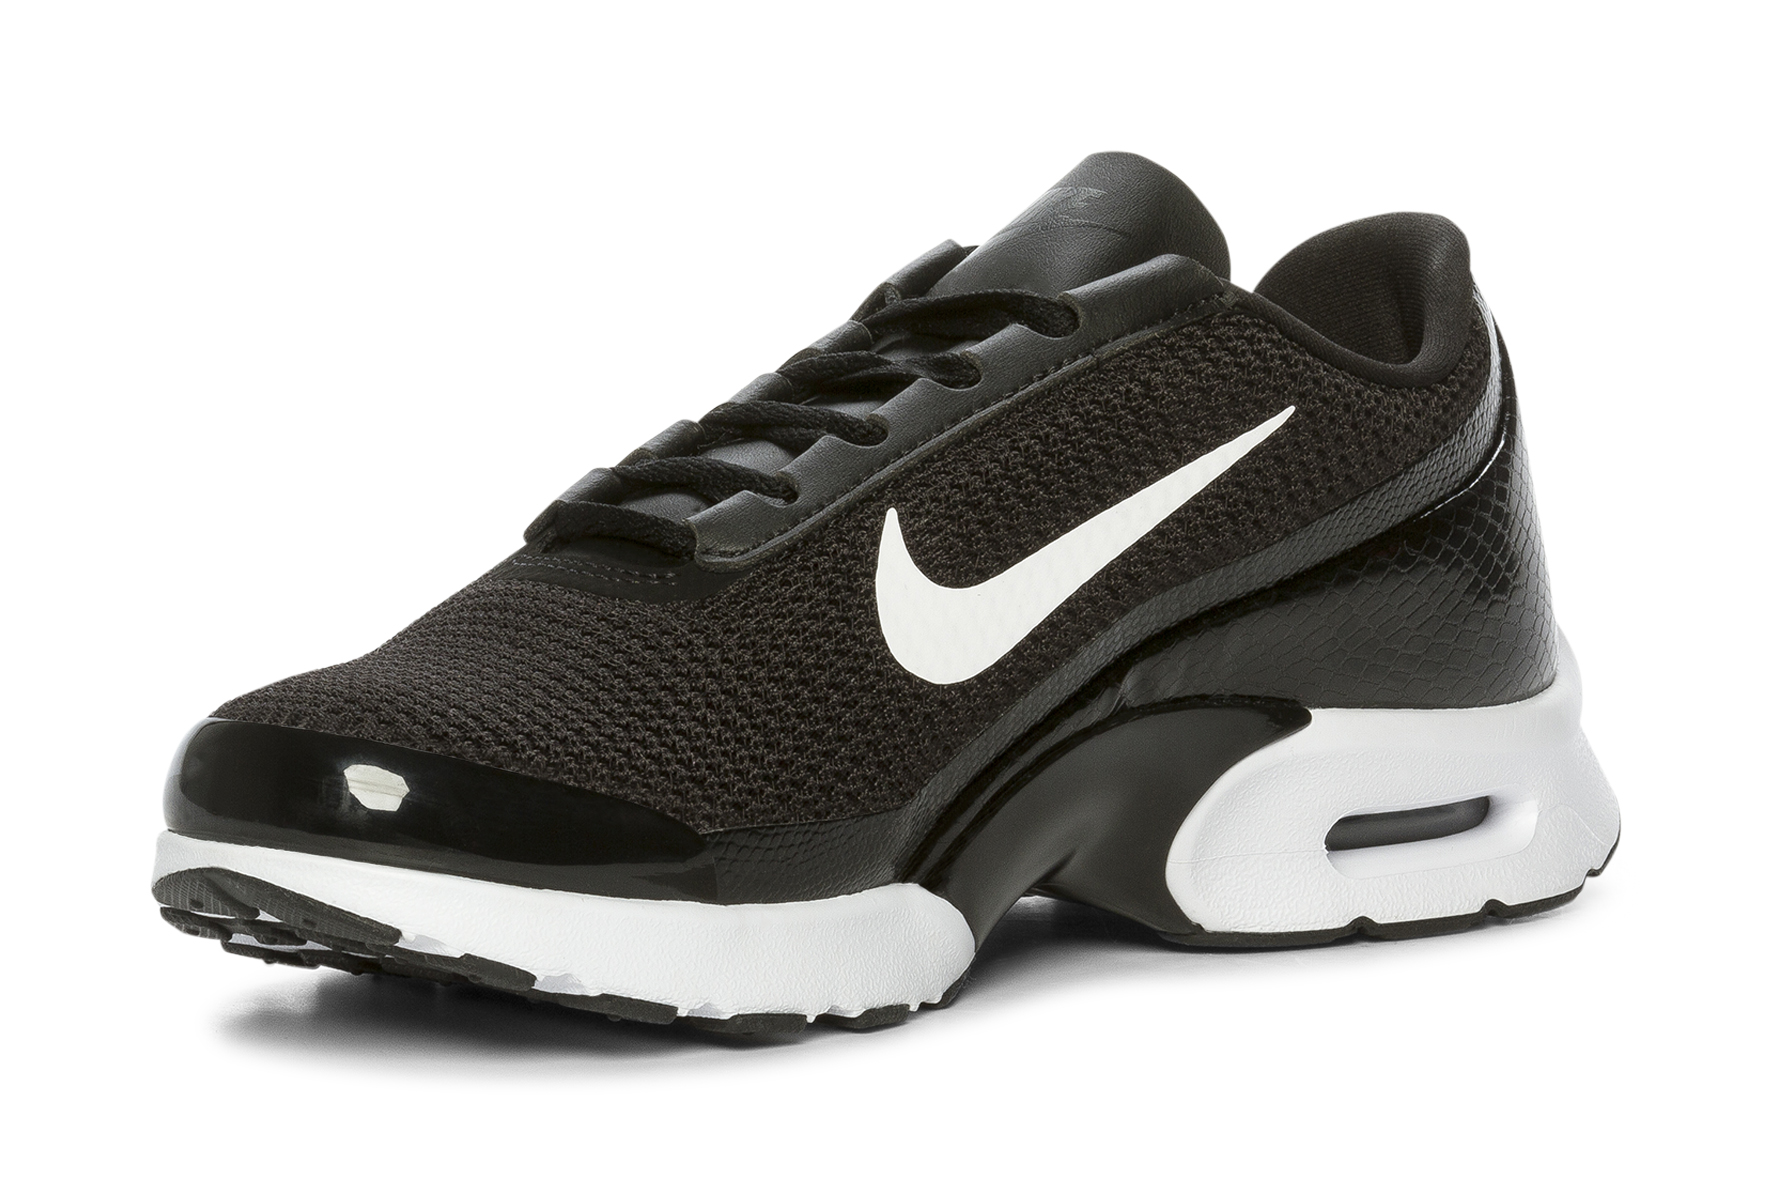 save off a054a 48eee Nike Air Max Jewell - Musta 314040 feetfirst.fi